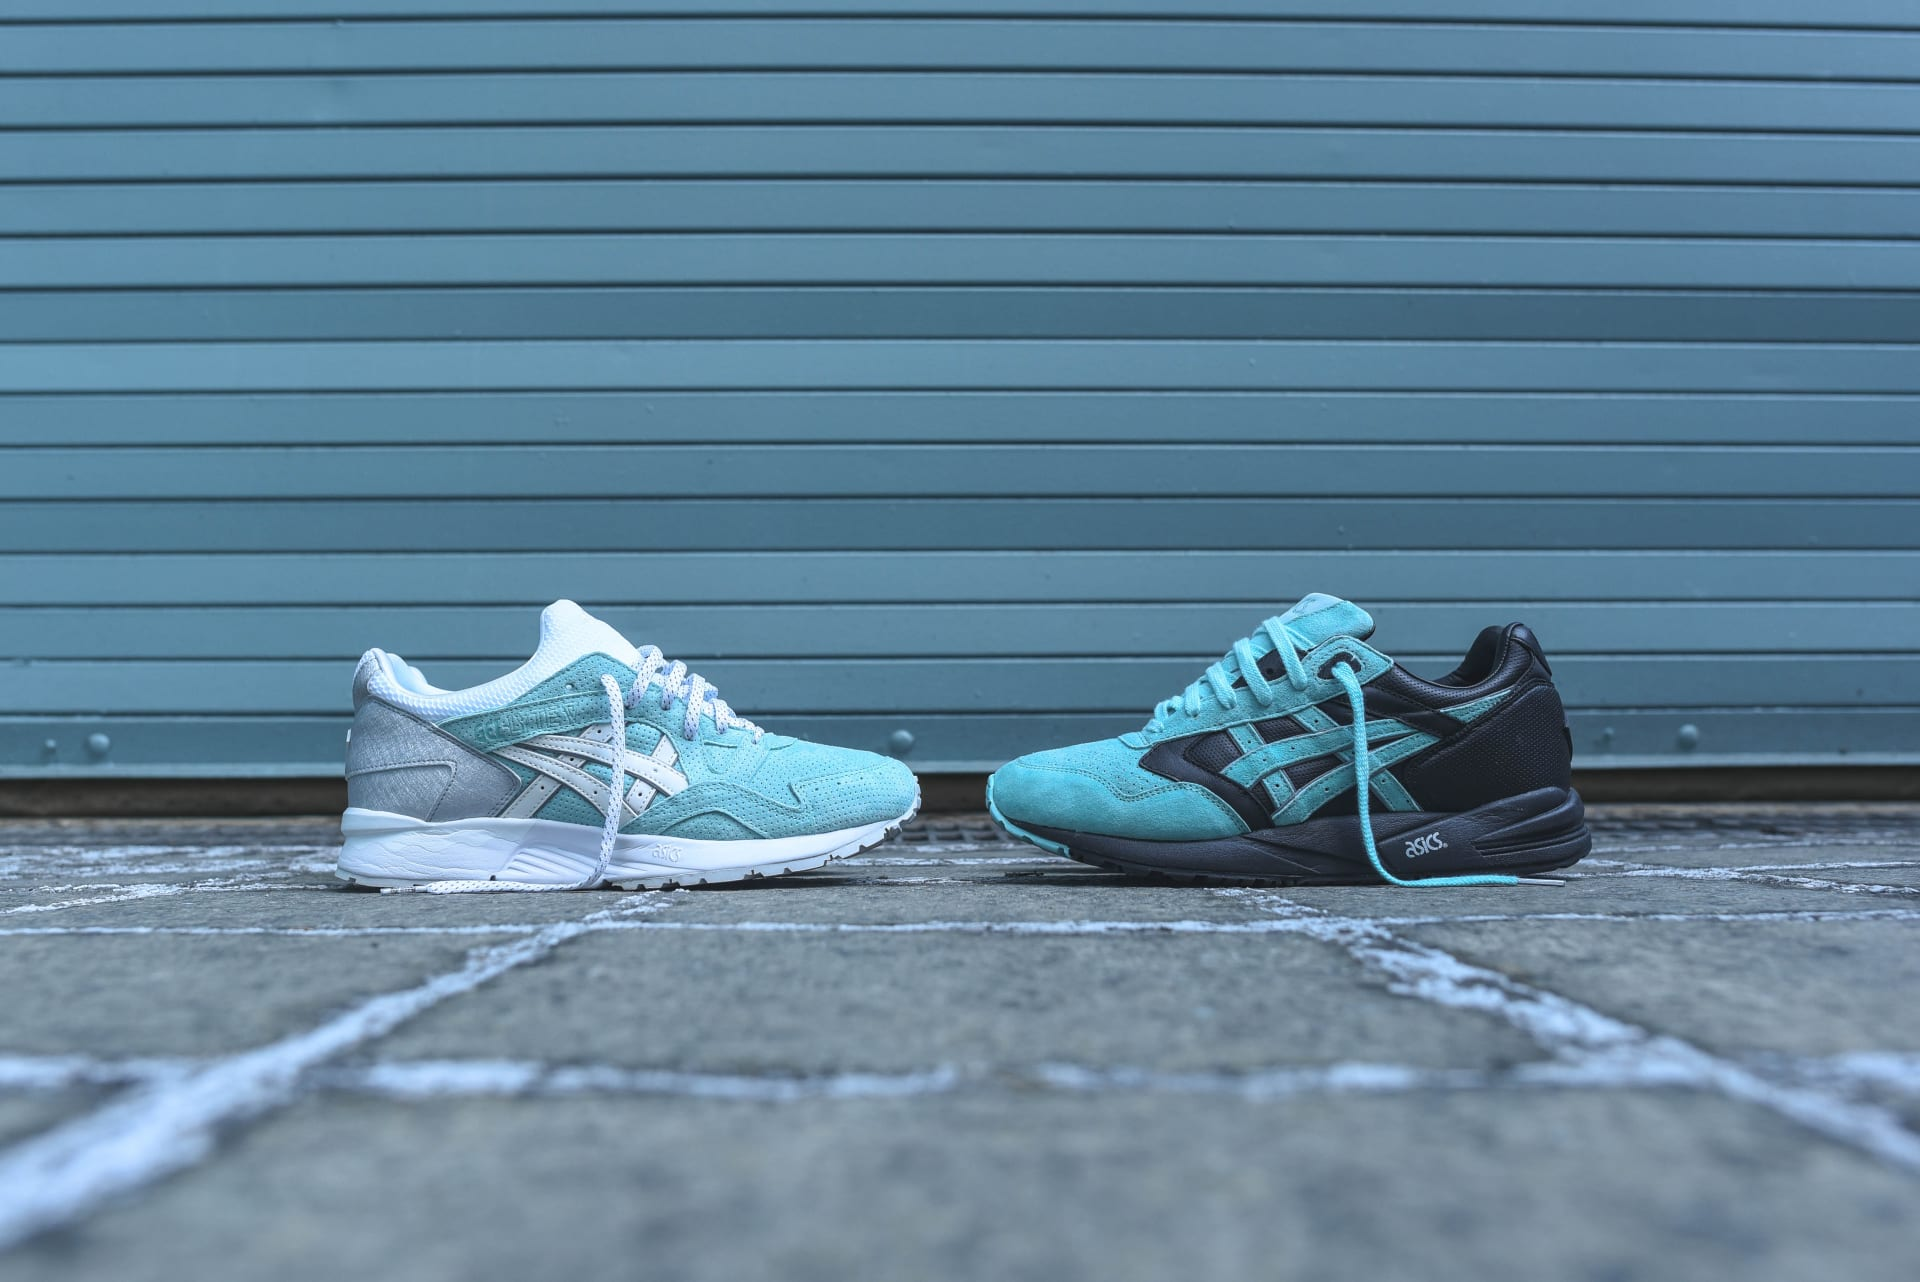 42e70b40d5 Ronnie Fieg and Nicky Diamonds Asics Collaboration Interview | Complex